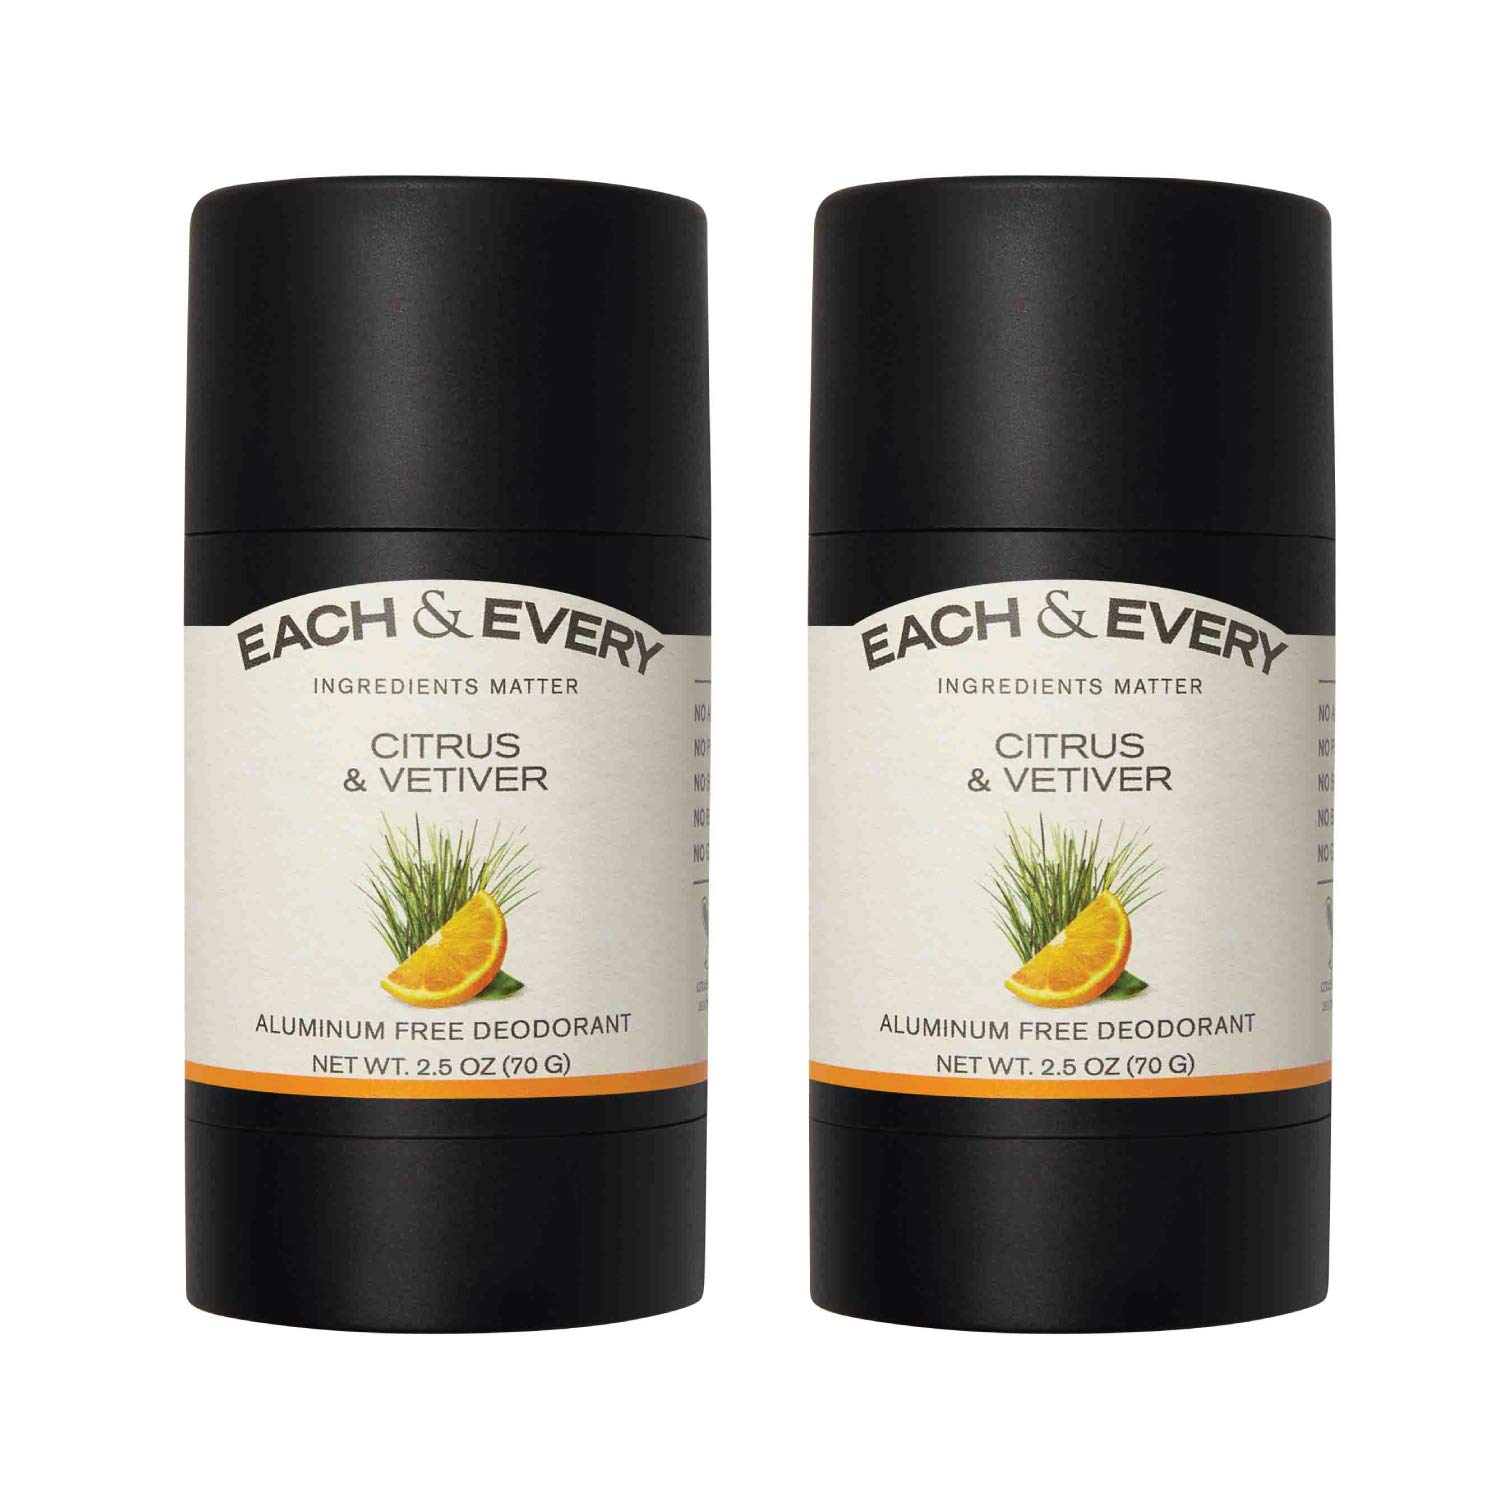 Each & Every 2-Pack Natural Aluminum-Free Deodorant for Sensitive Skin with Essential Oils, Plant-Based Packaging, Citrus & Vetiver, 2.5 Oz.